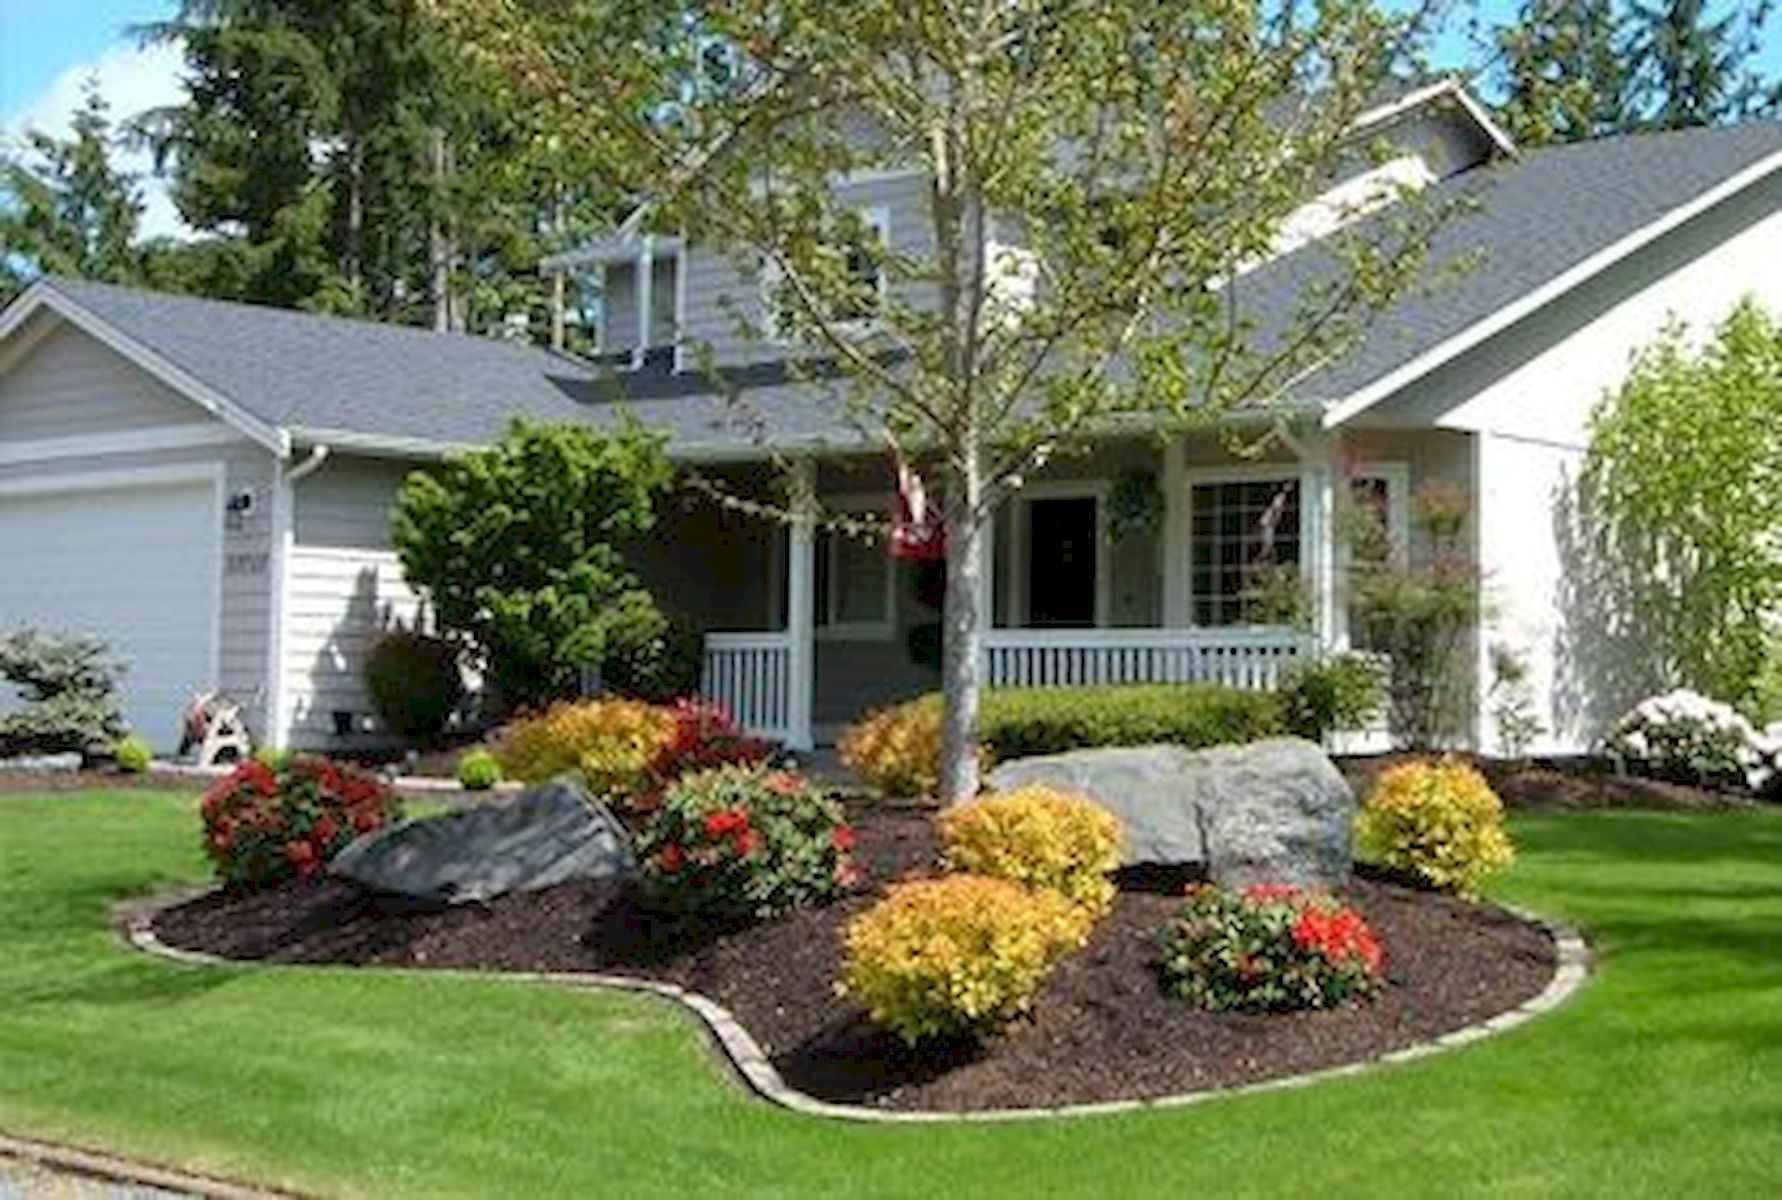 90 simple and beautiful front yard landscaping ideas on a on front yard landscaping ideas id=72442